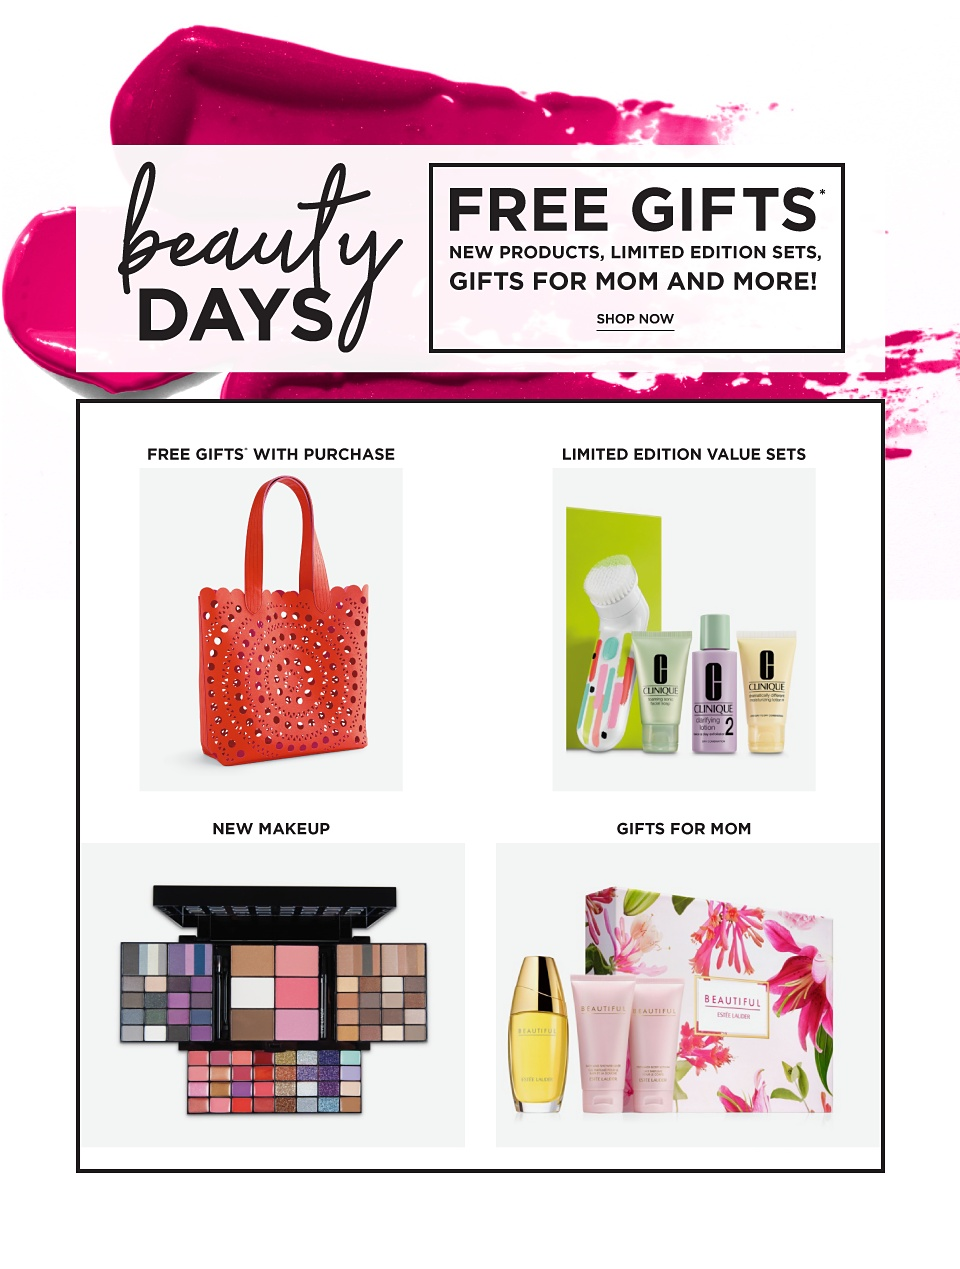 Beauty Days! Free Gifts* - New Products, limited Edition Sets, Gifts for Mom and More! Free Gifts* with Purchase, New makeup, Limited Edition Value Sets, Limited Time Offers, Gifts for Mom